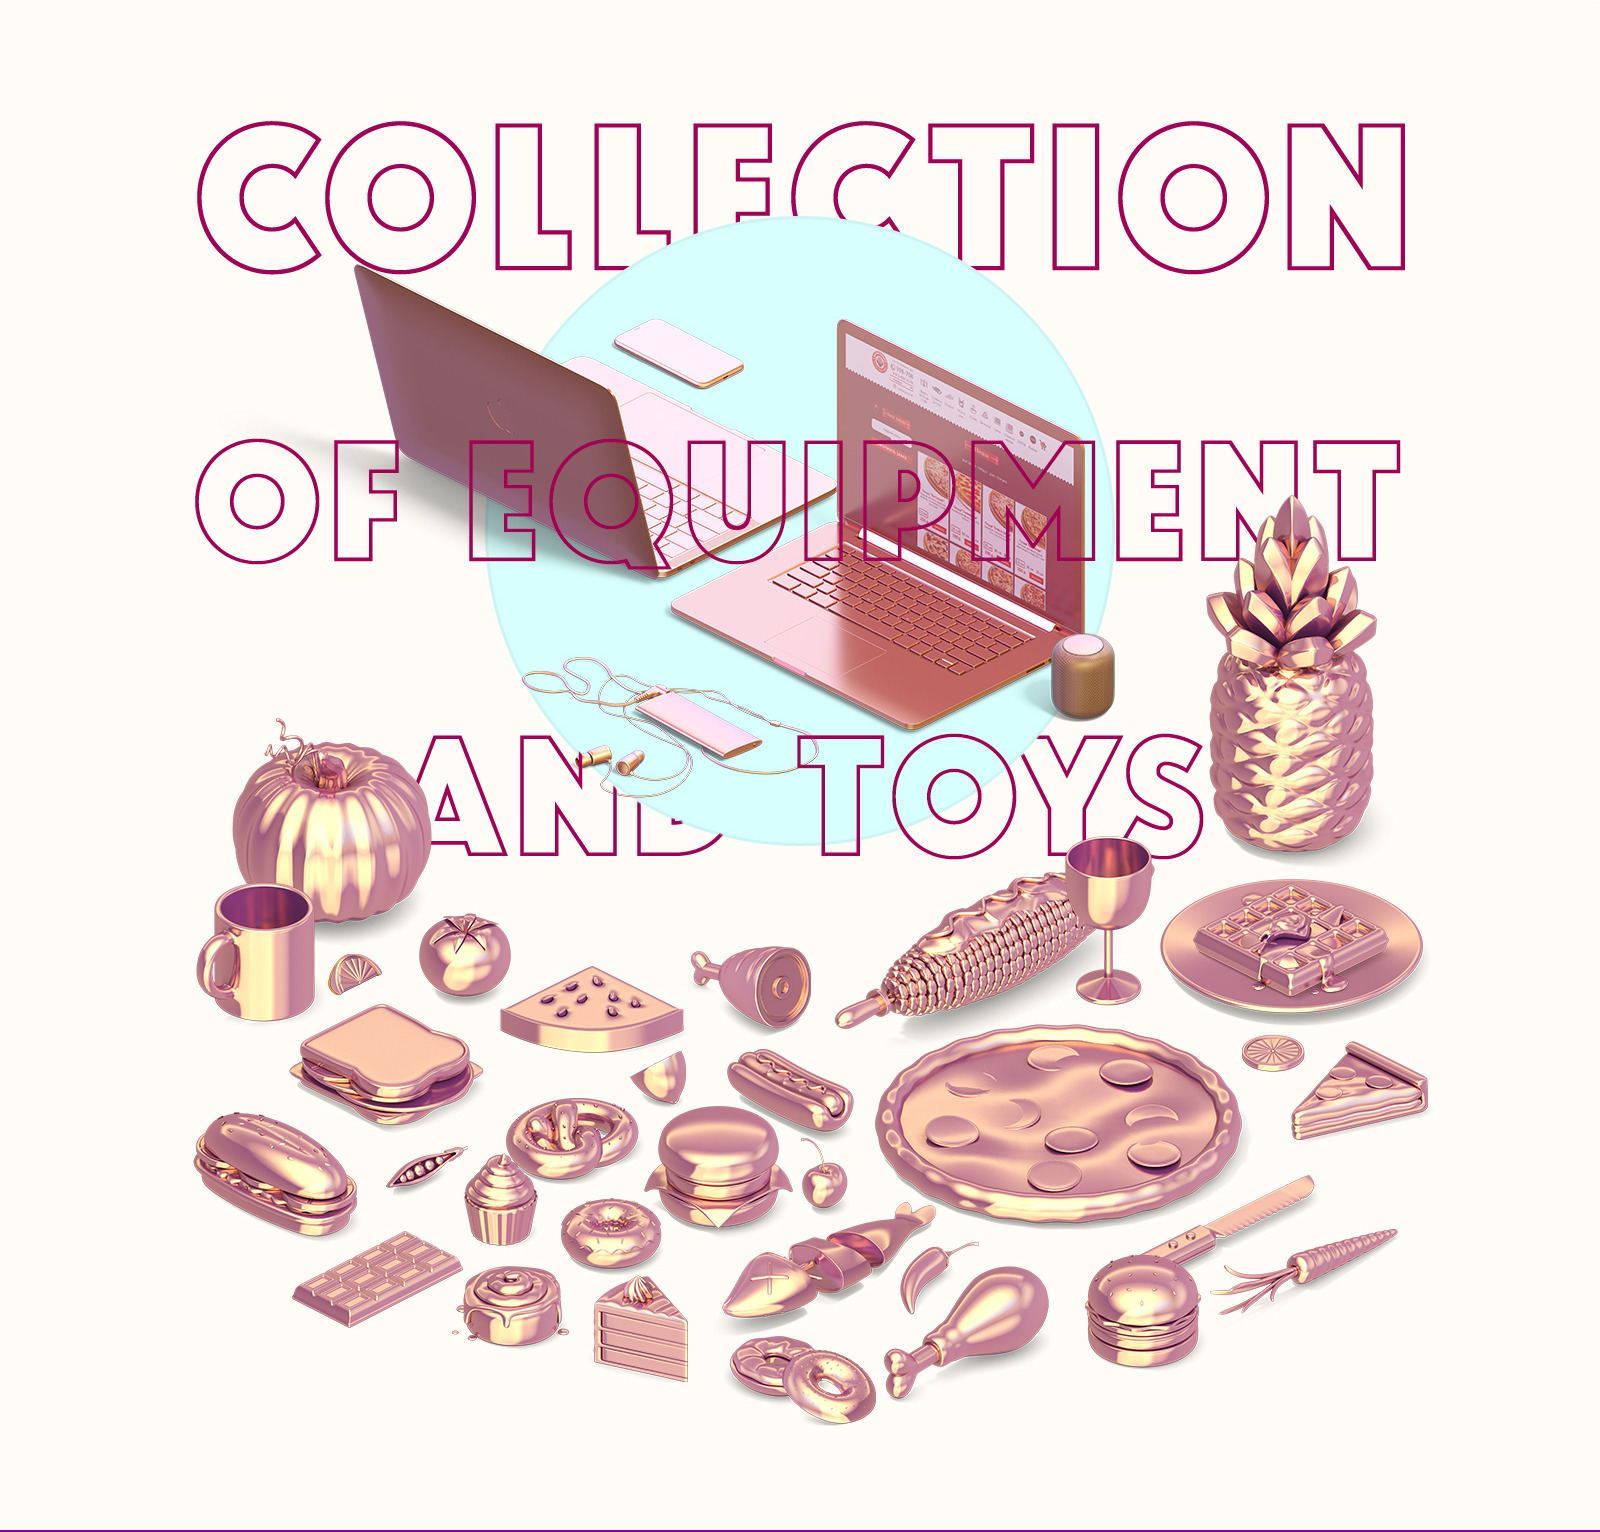 1020 gold items of technic and toys